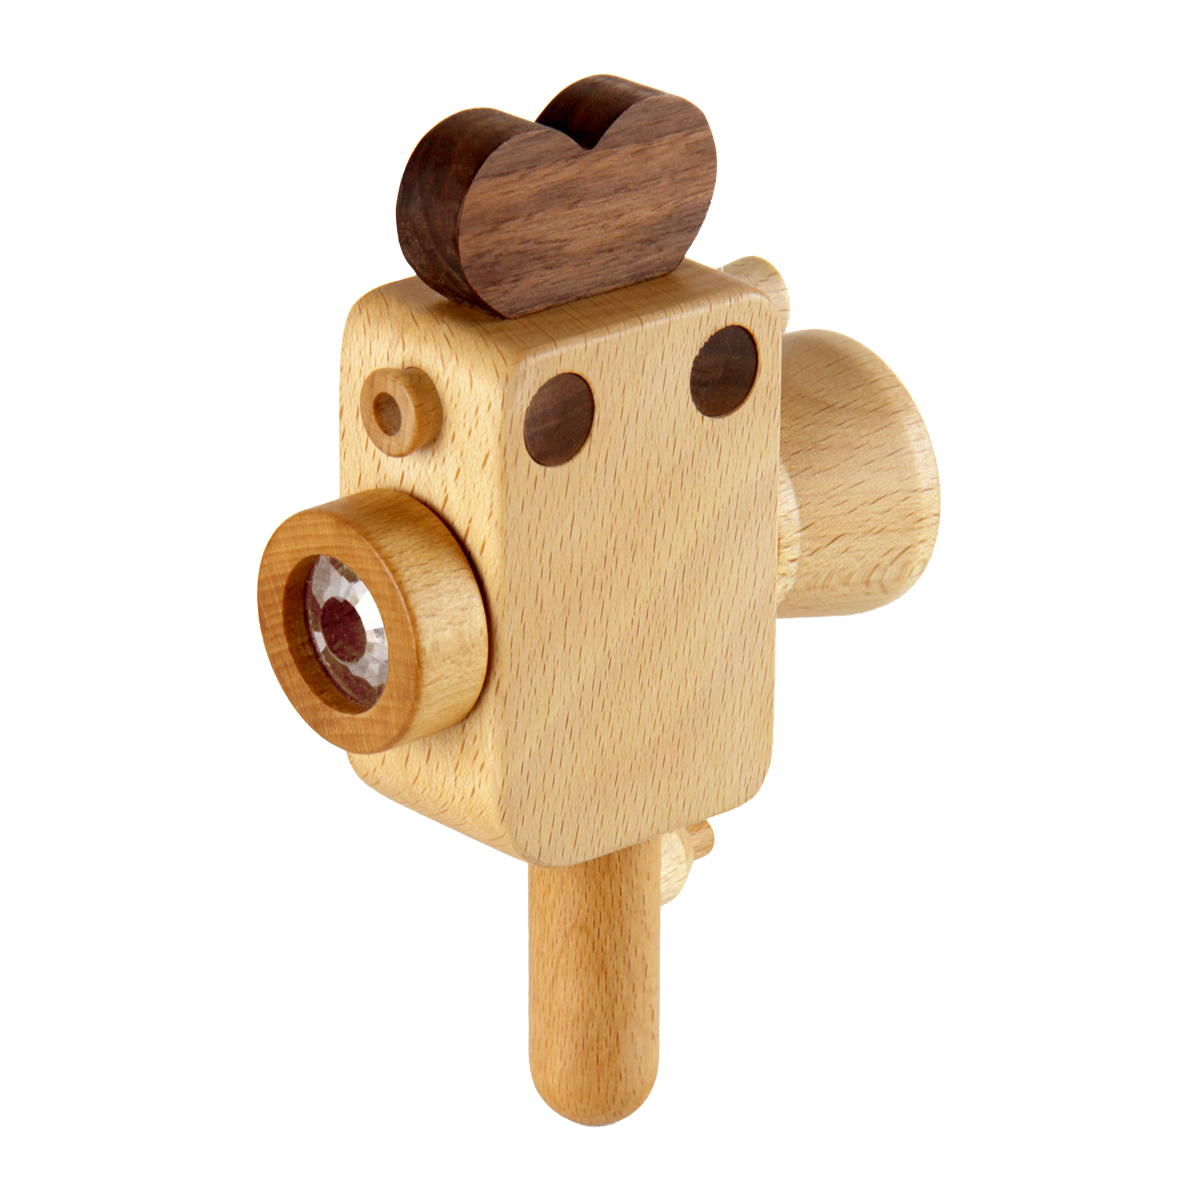 Father's Factory Super 8 wooden camera toy